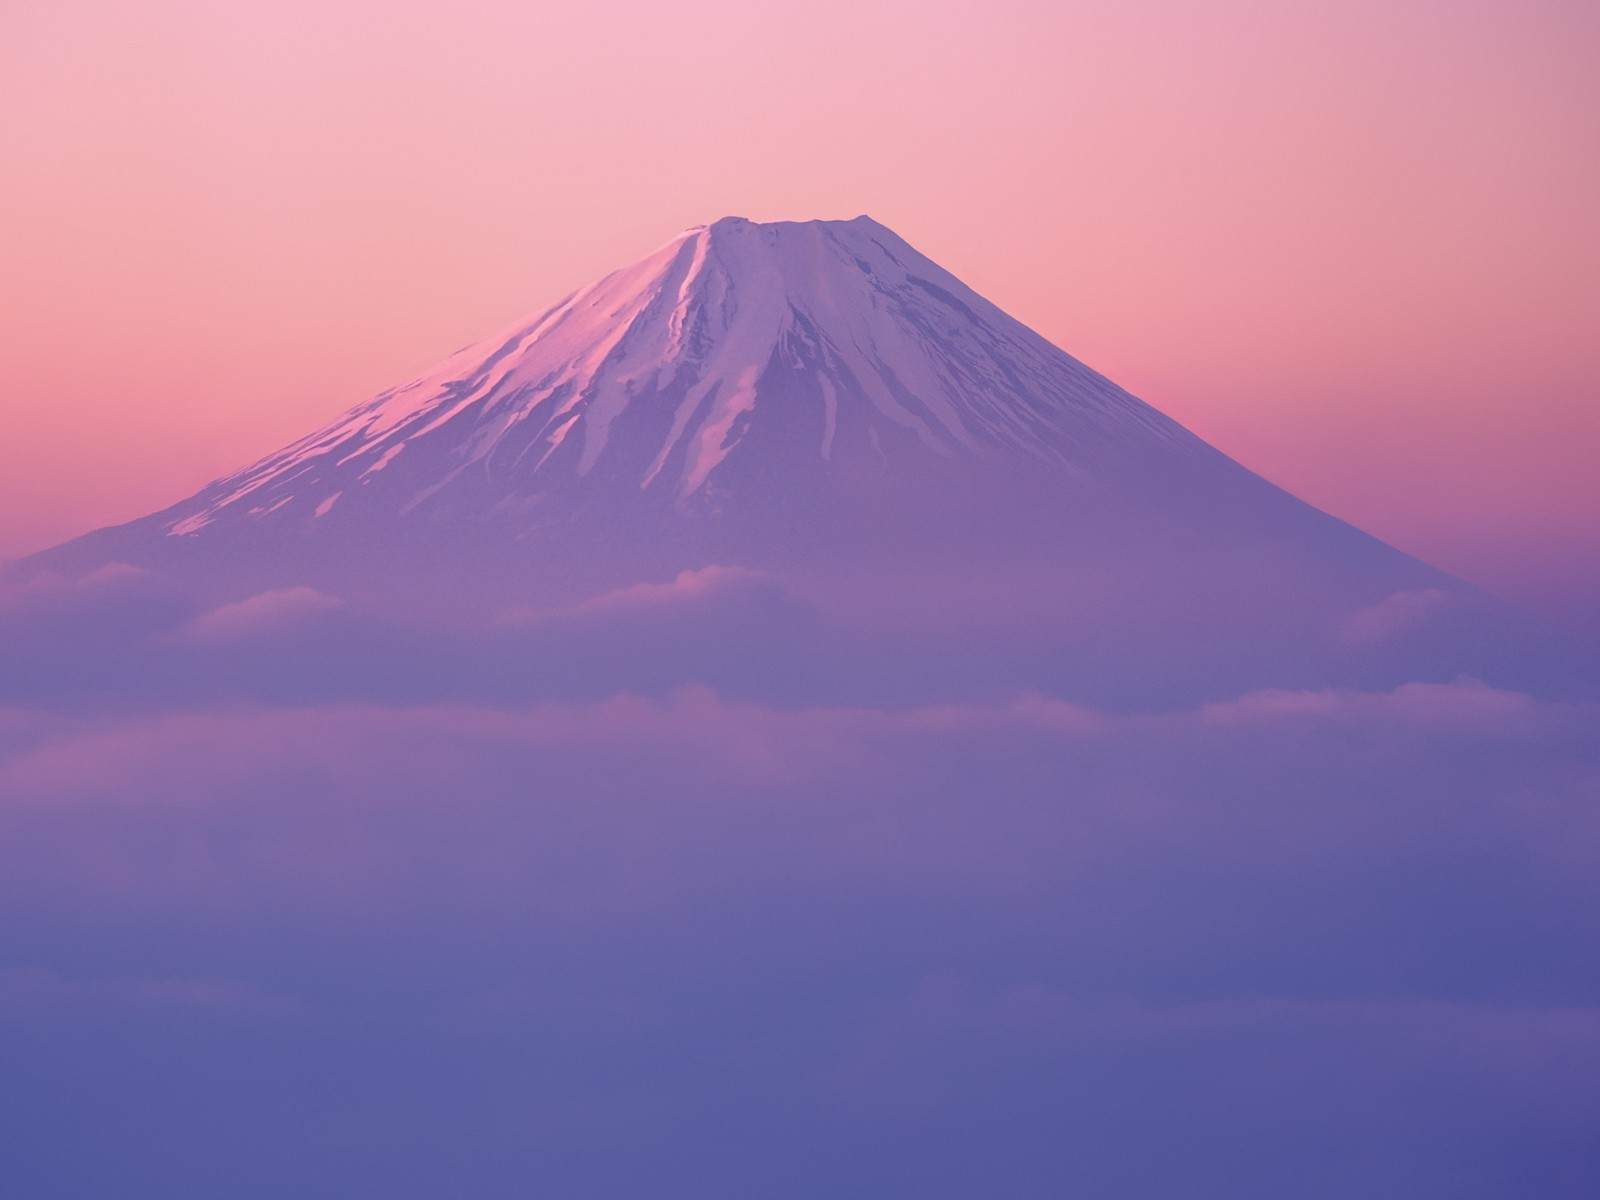 Mount Fuji Wallpaper Iphone Mac Os X Mt Fuji Hintergrundbilder Mac Os X Mt Fuji